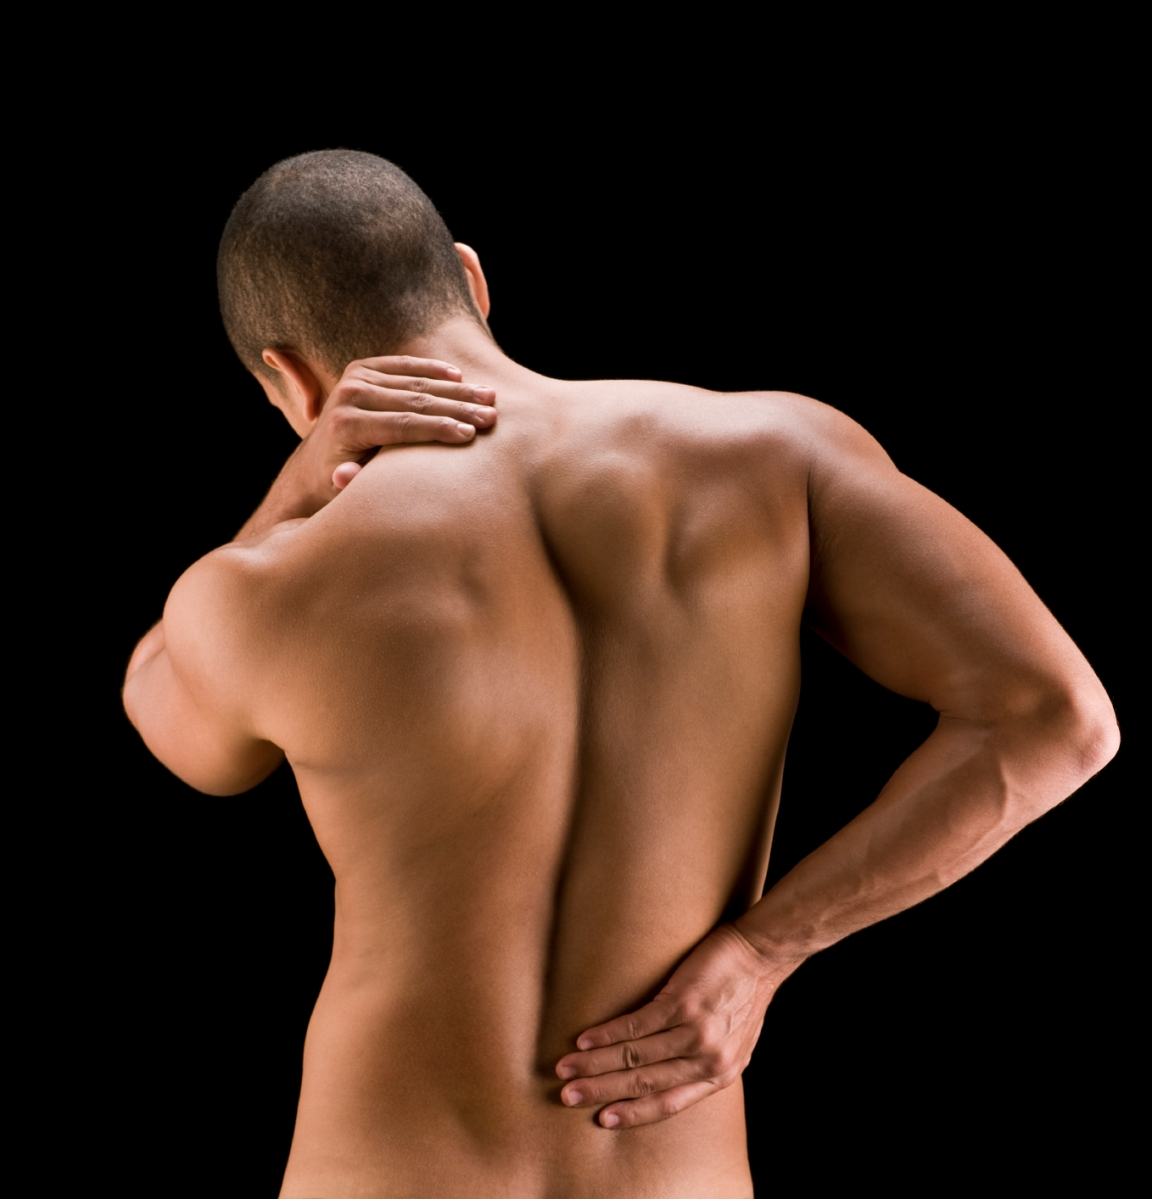 Muscle Pain vs Muscle Strain